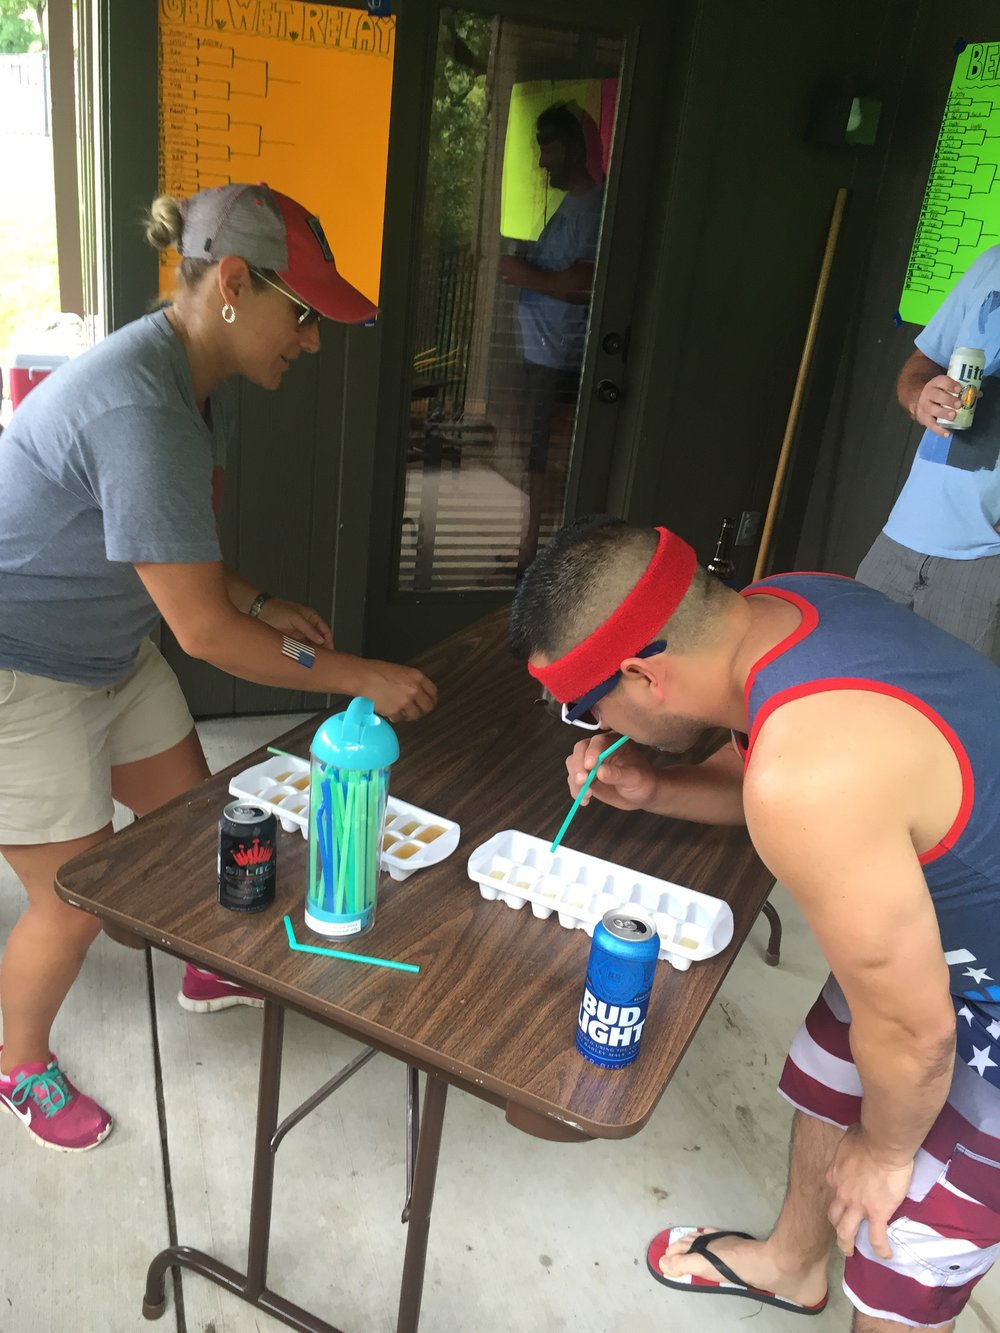 Dry Tri- includes chug and flip one cup, bounce a quarter into a glass, drink beer out of an ice cube tray with a straw…it is by far the hardest…drinking out of a straw is not good!